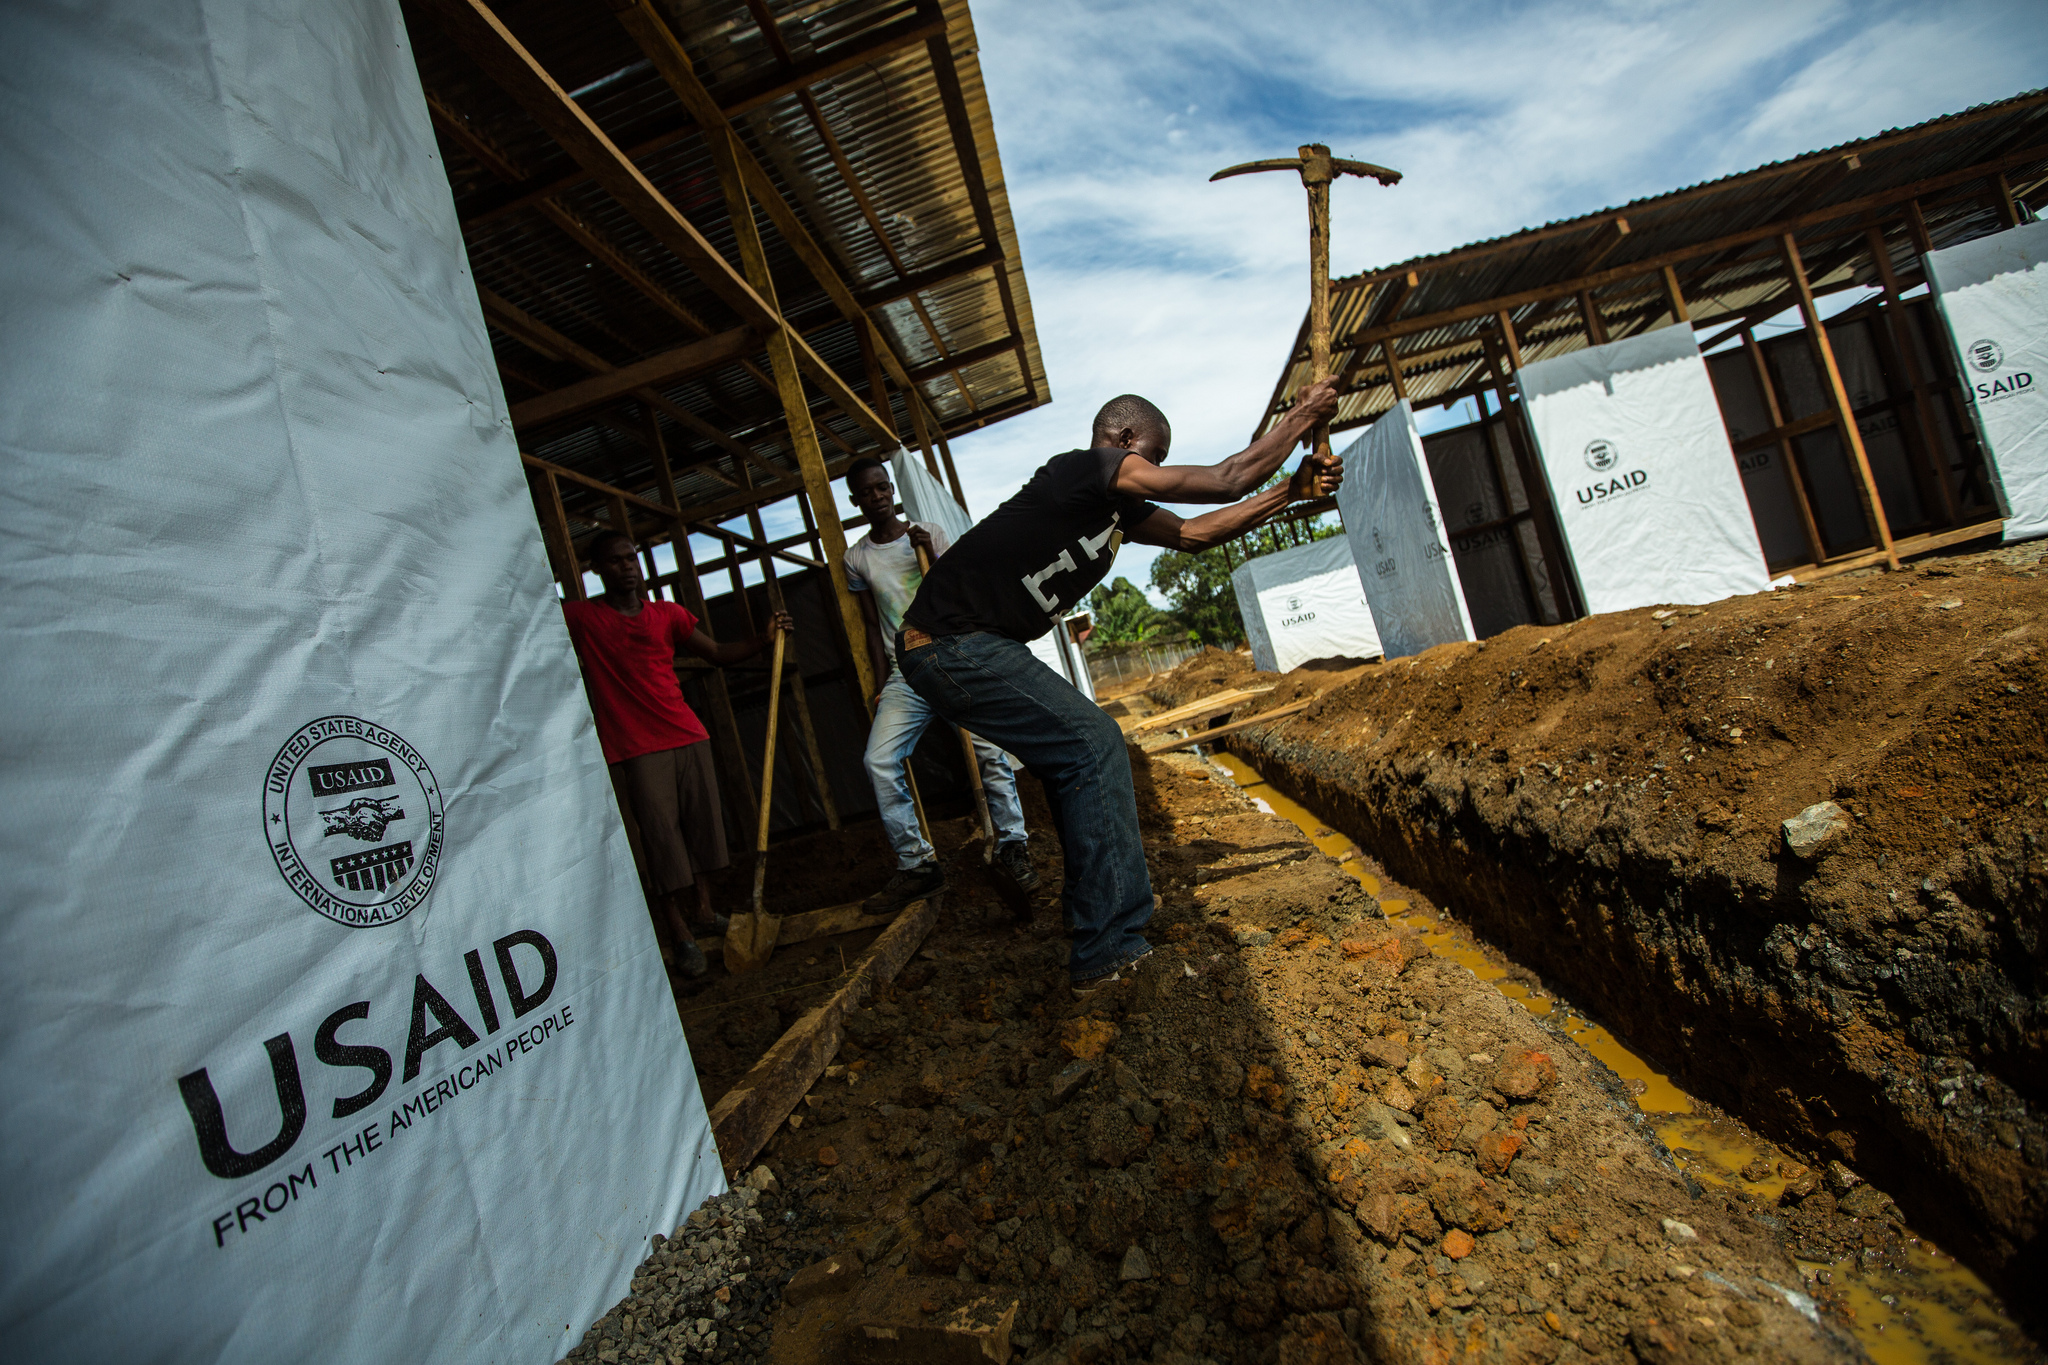 With funding and support from USAID construction crews work quickly to build a new Ebola Treatment Unit in Monrovia in front of the former Ministry of Defence Building. / Morgana Wingard